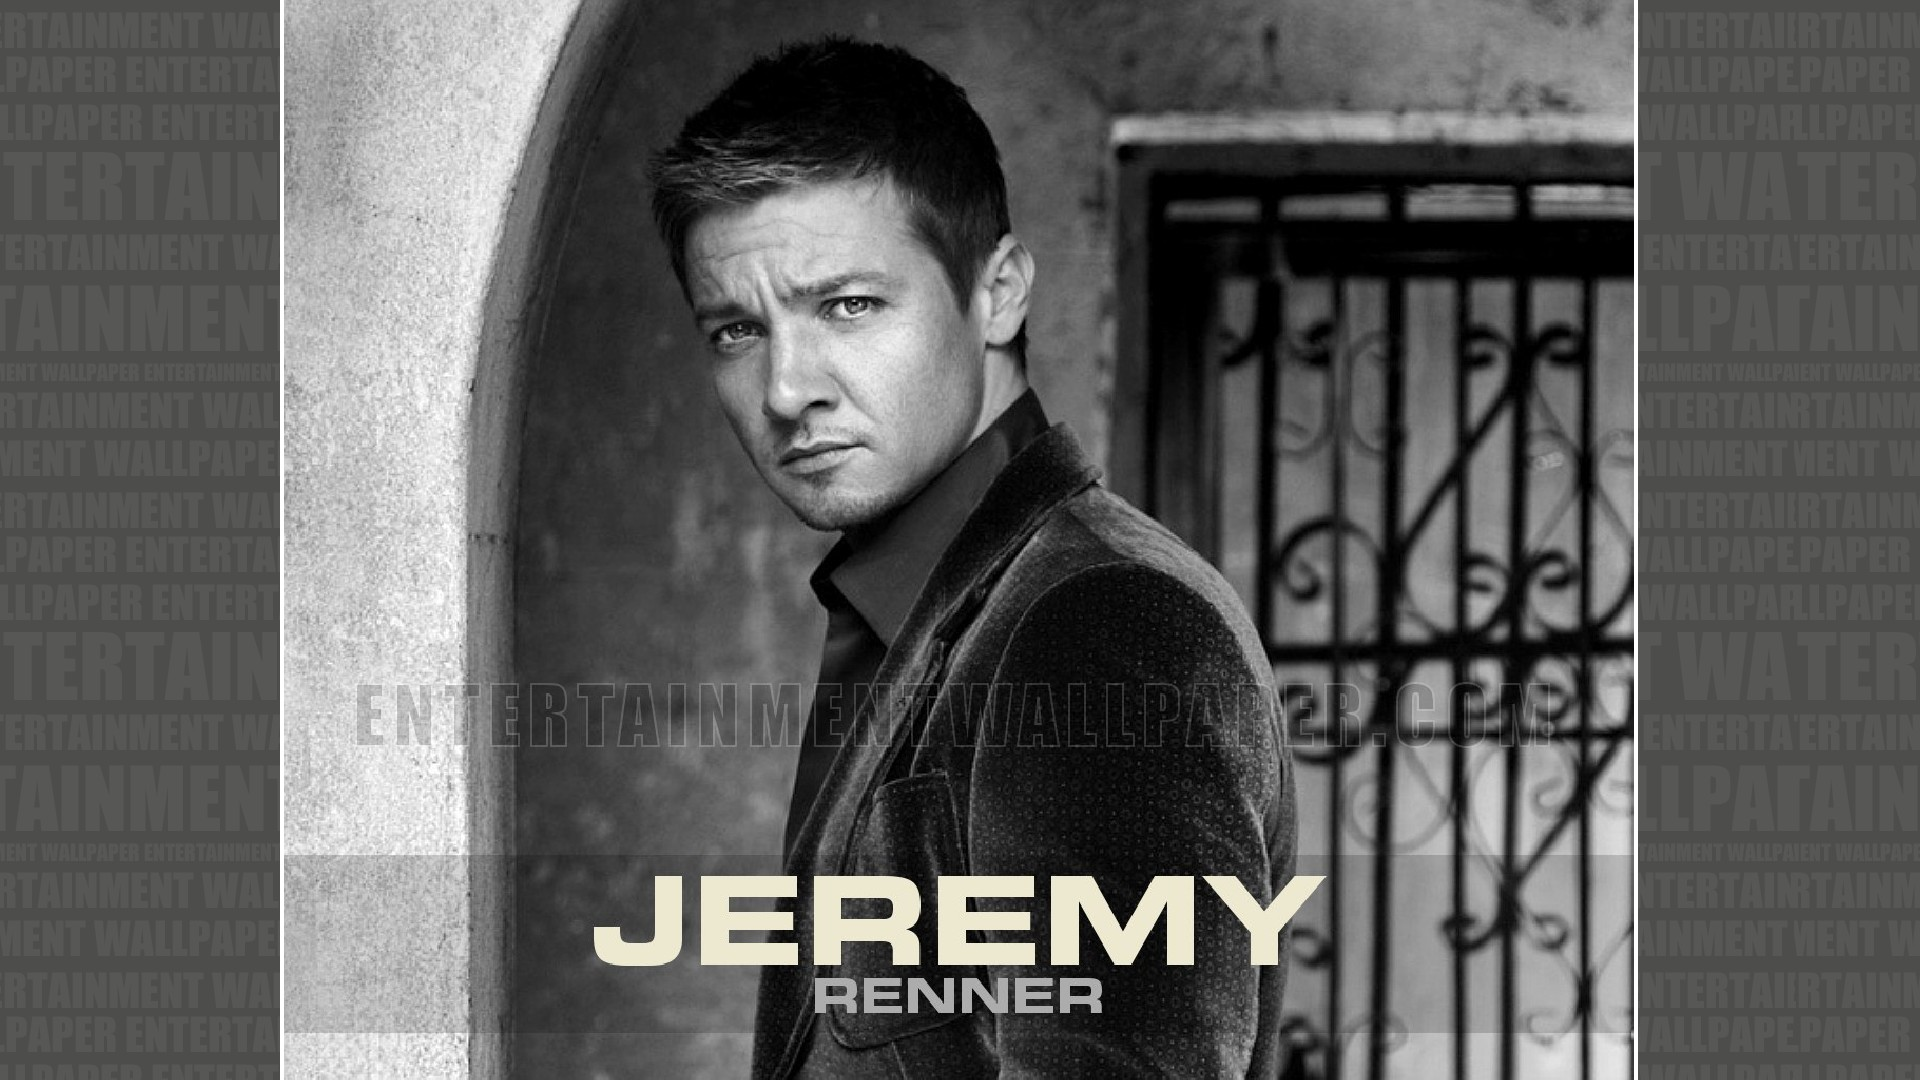 1920x1080 - Jeremy Renner Wallpapers 2